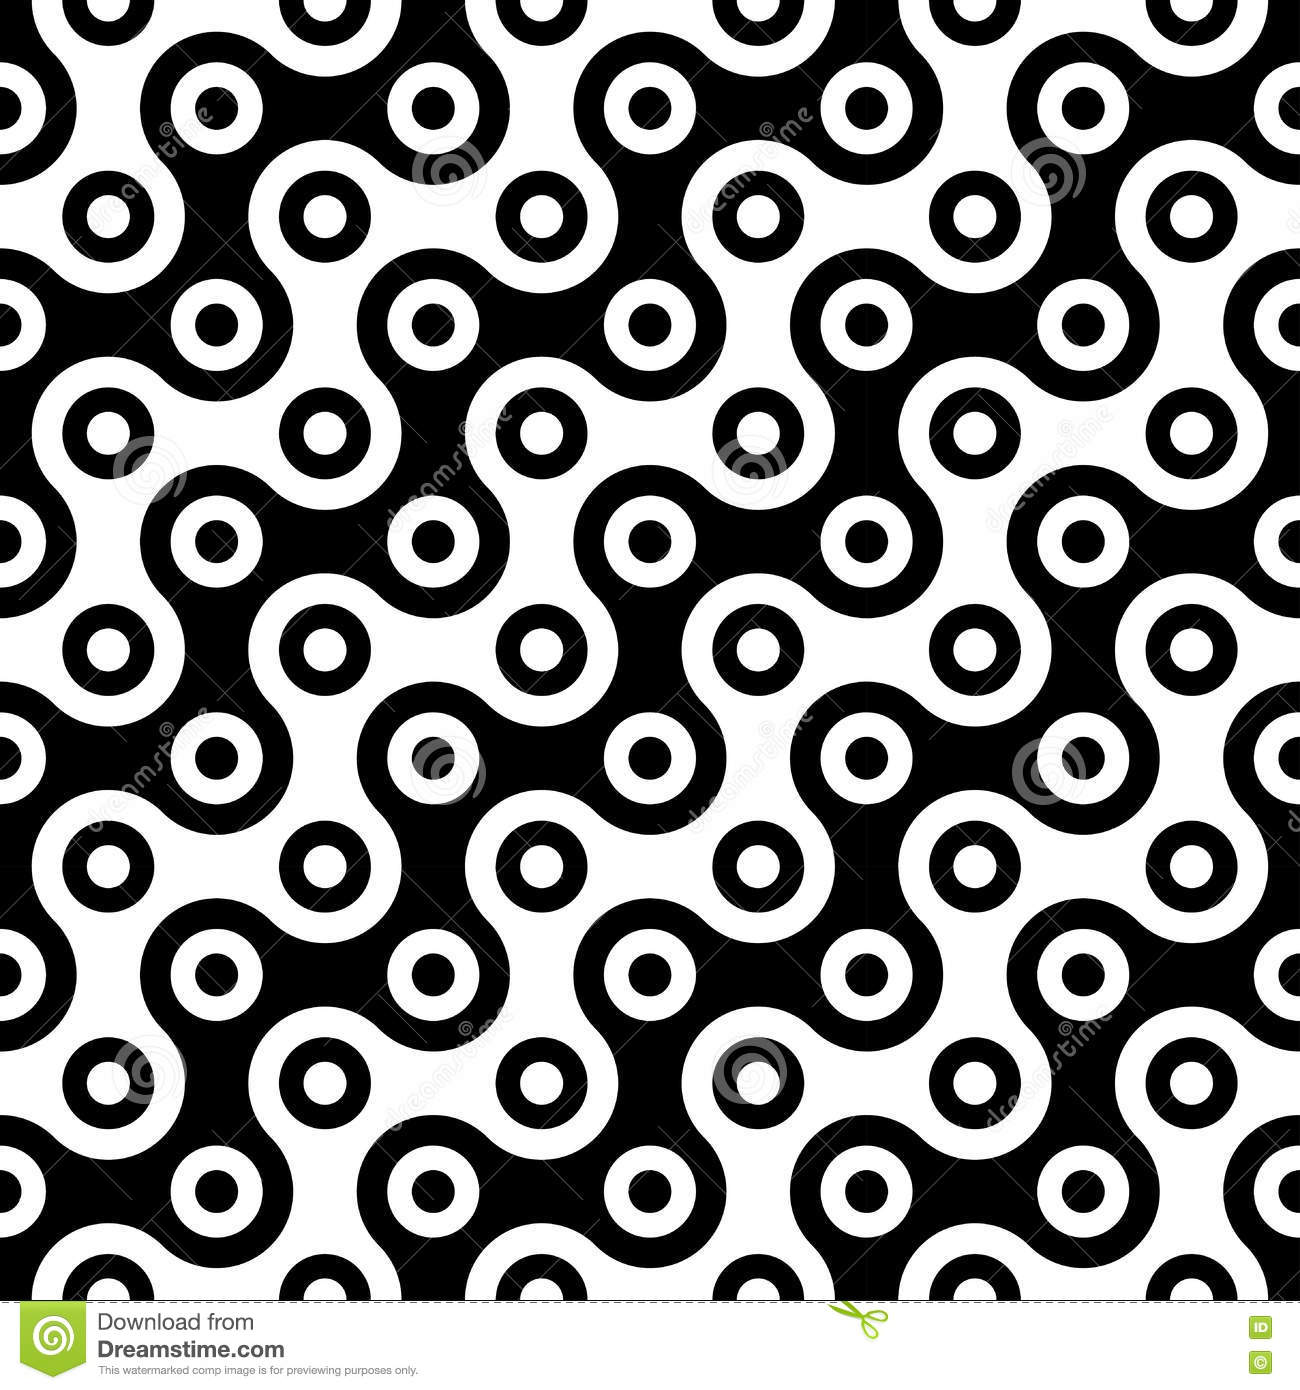 Black bed sheets pattern - Vector Modern Abstract Geometry Circles Pattern Black And White Seamless Geometric Background